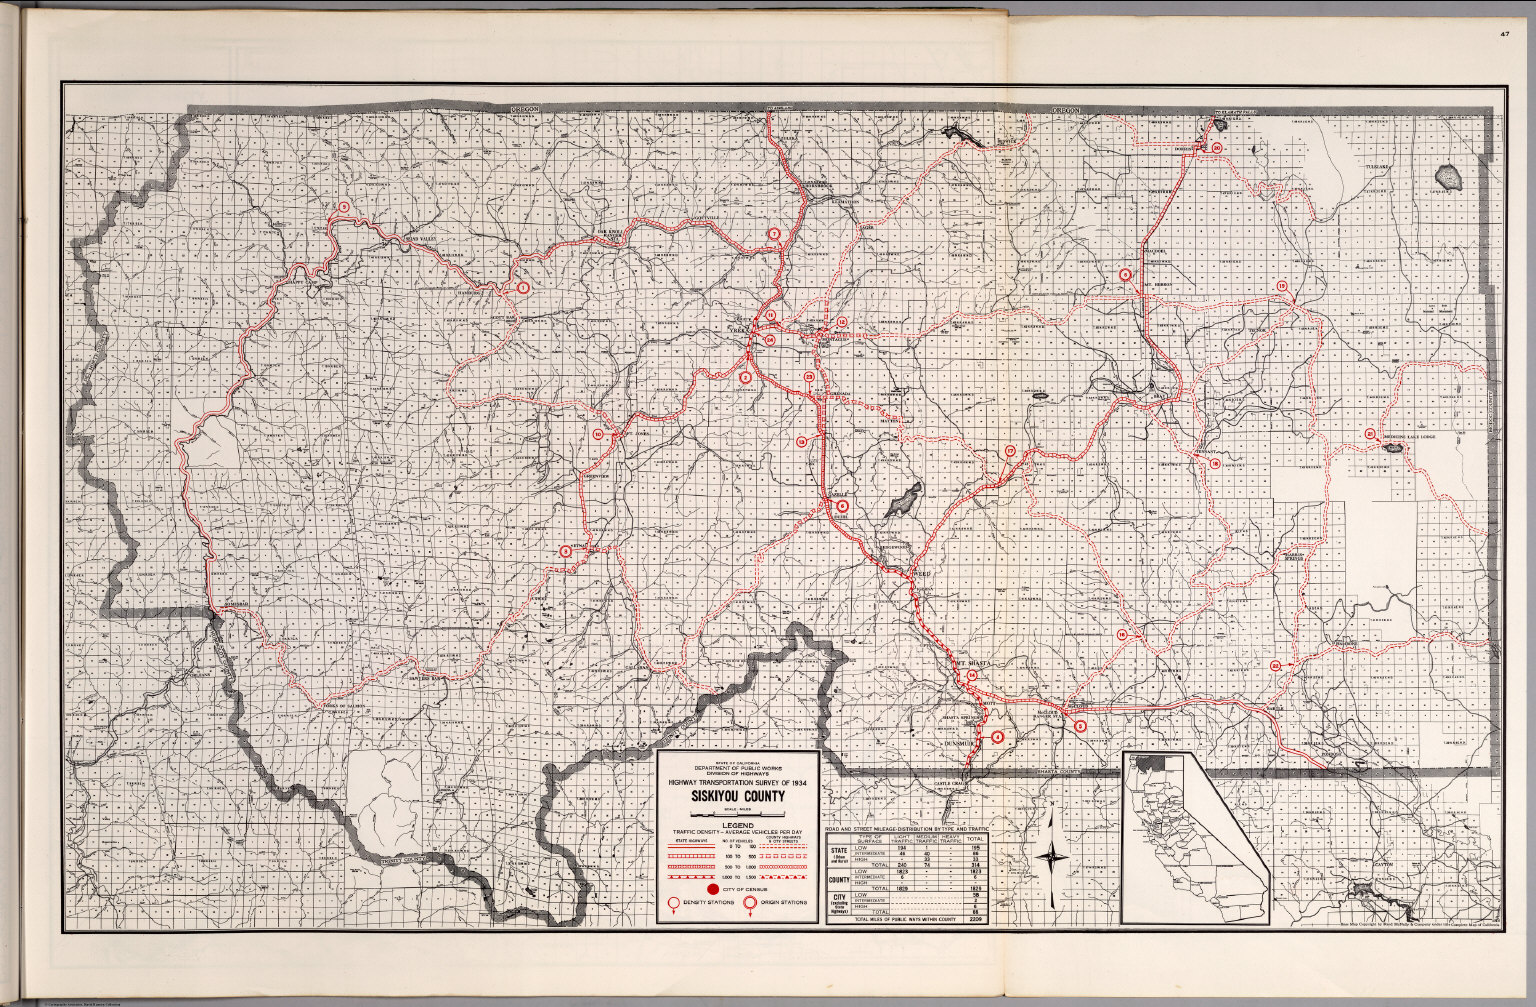 Siskiyou County David Rumsey Historical Map Collection